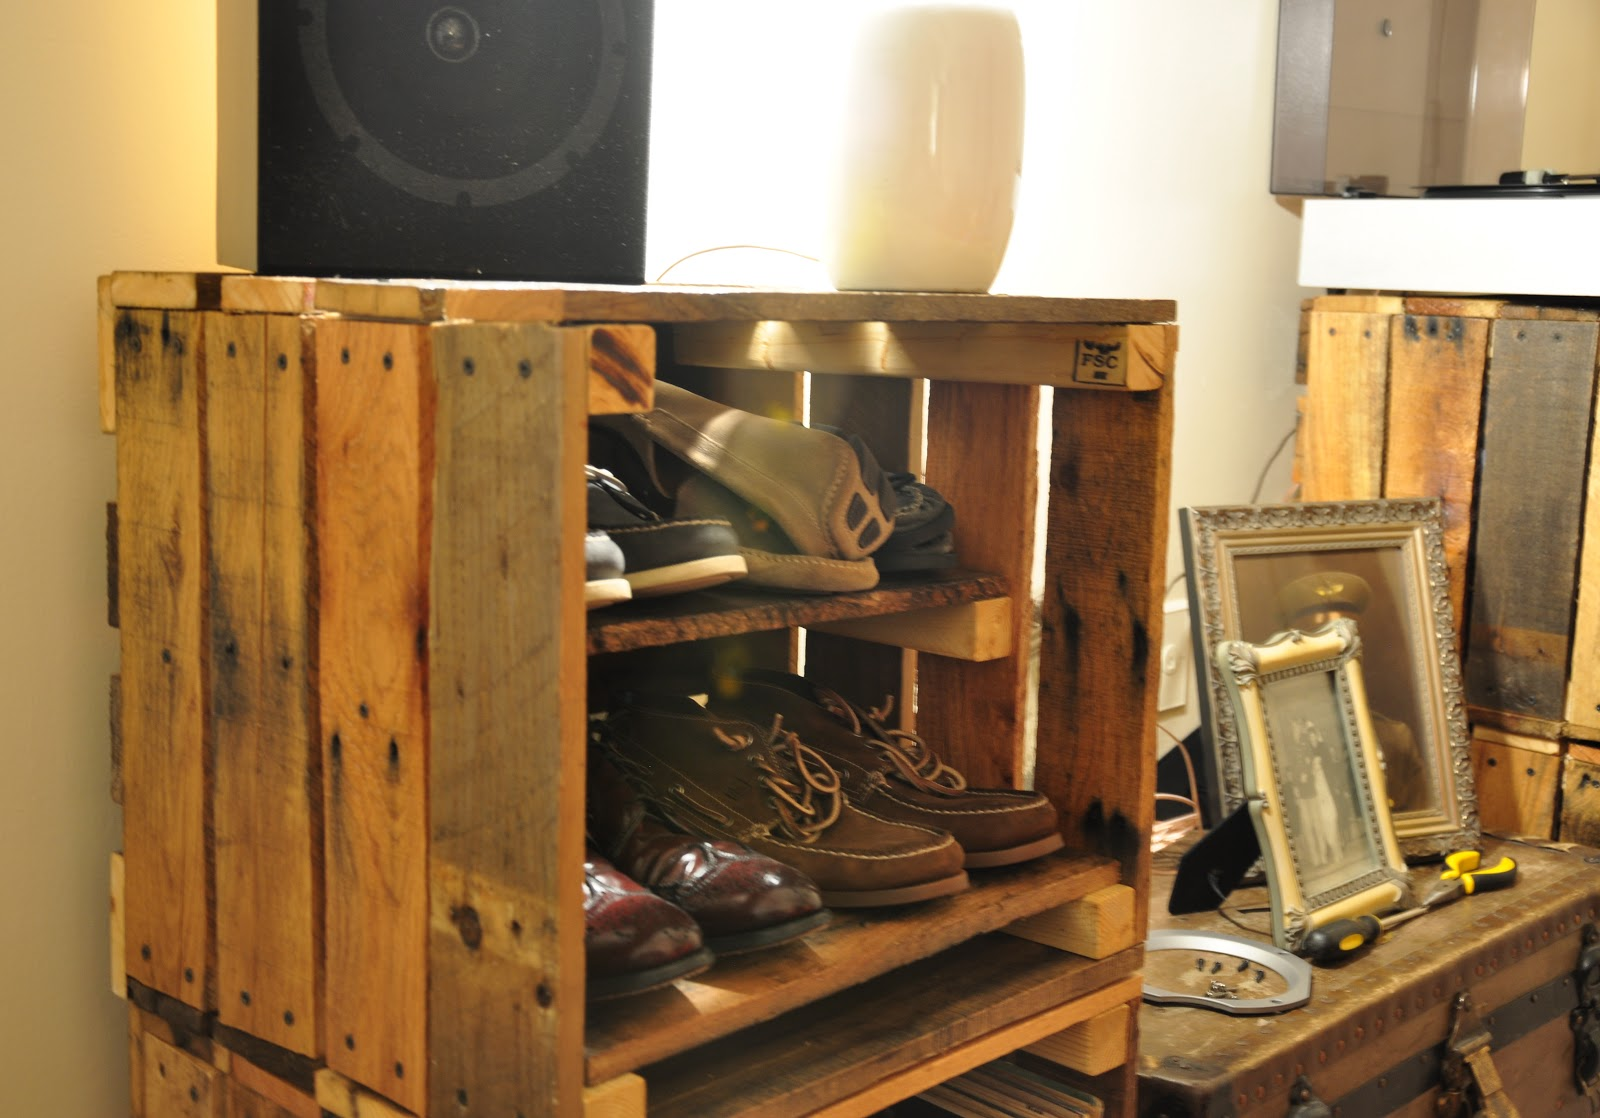 Extremely Ideas Record Player Storage. I Began This Project With An Idea Of  Creating My